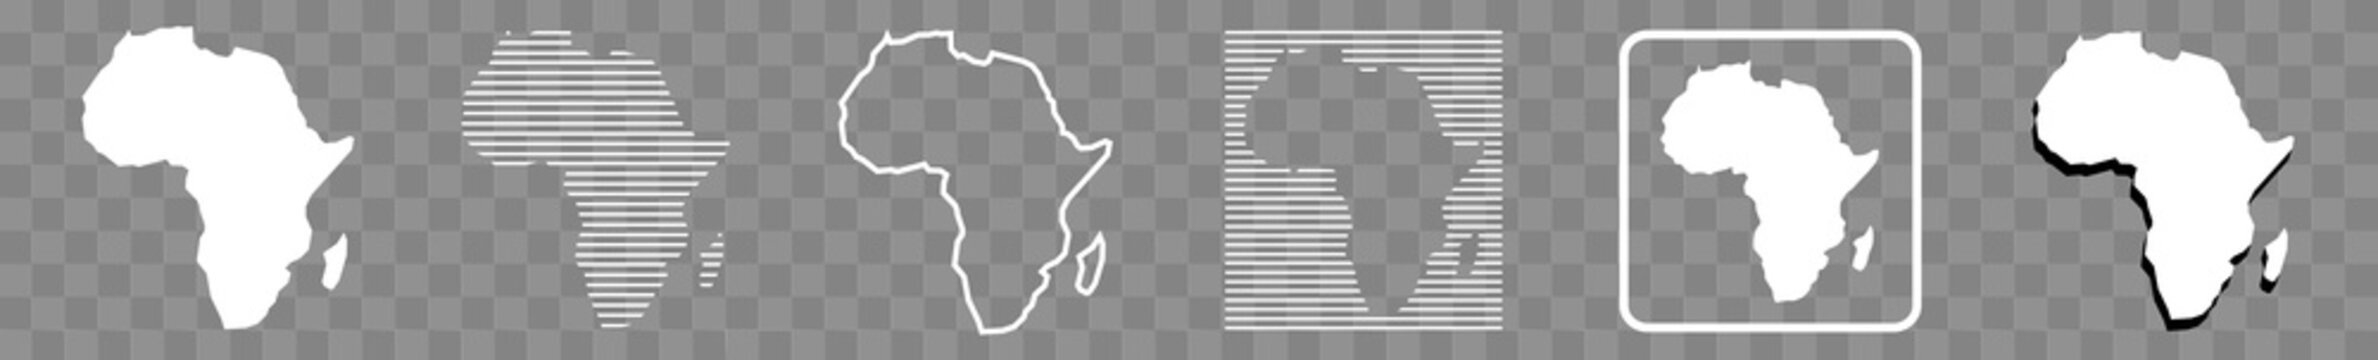 Africa Map White | African Border | Continent | Isolated Transparent | Variations